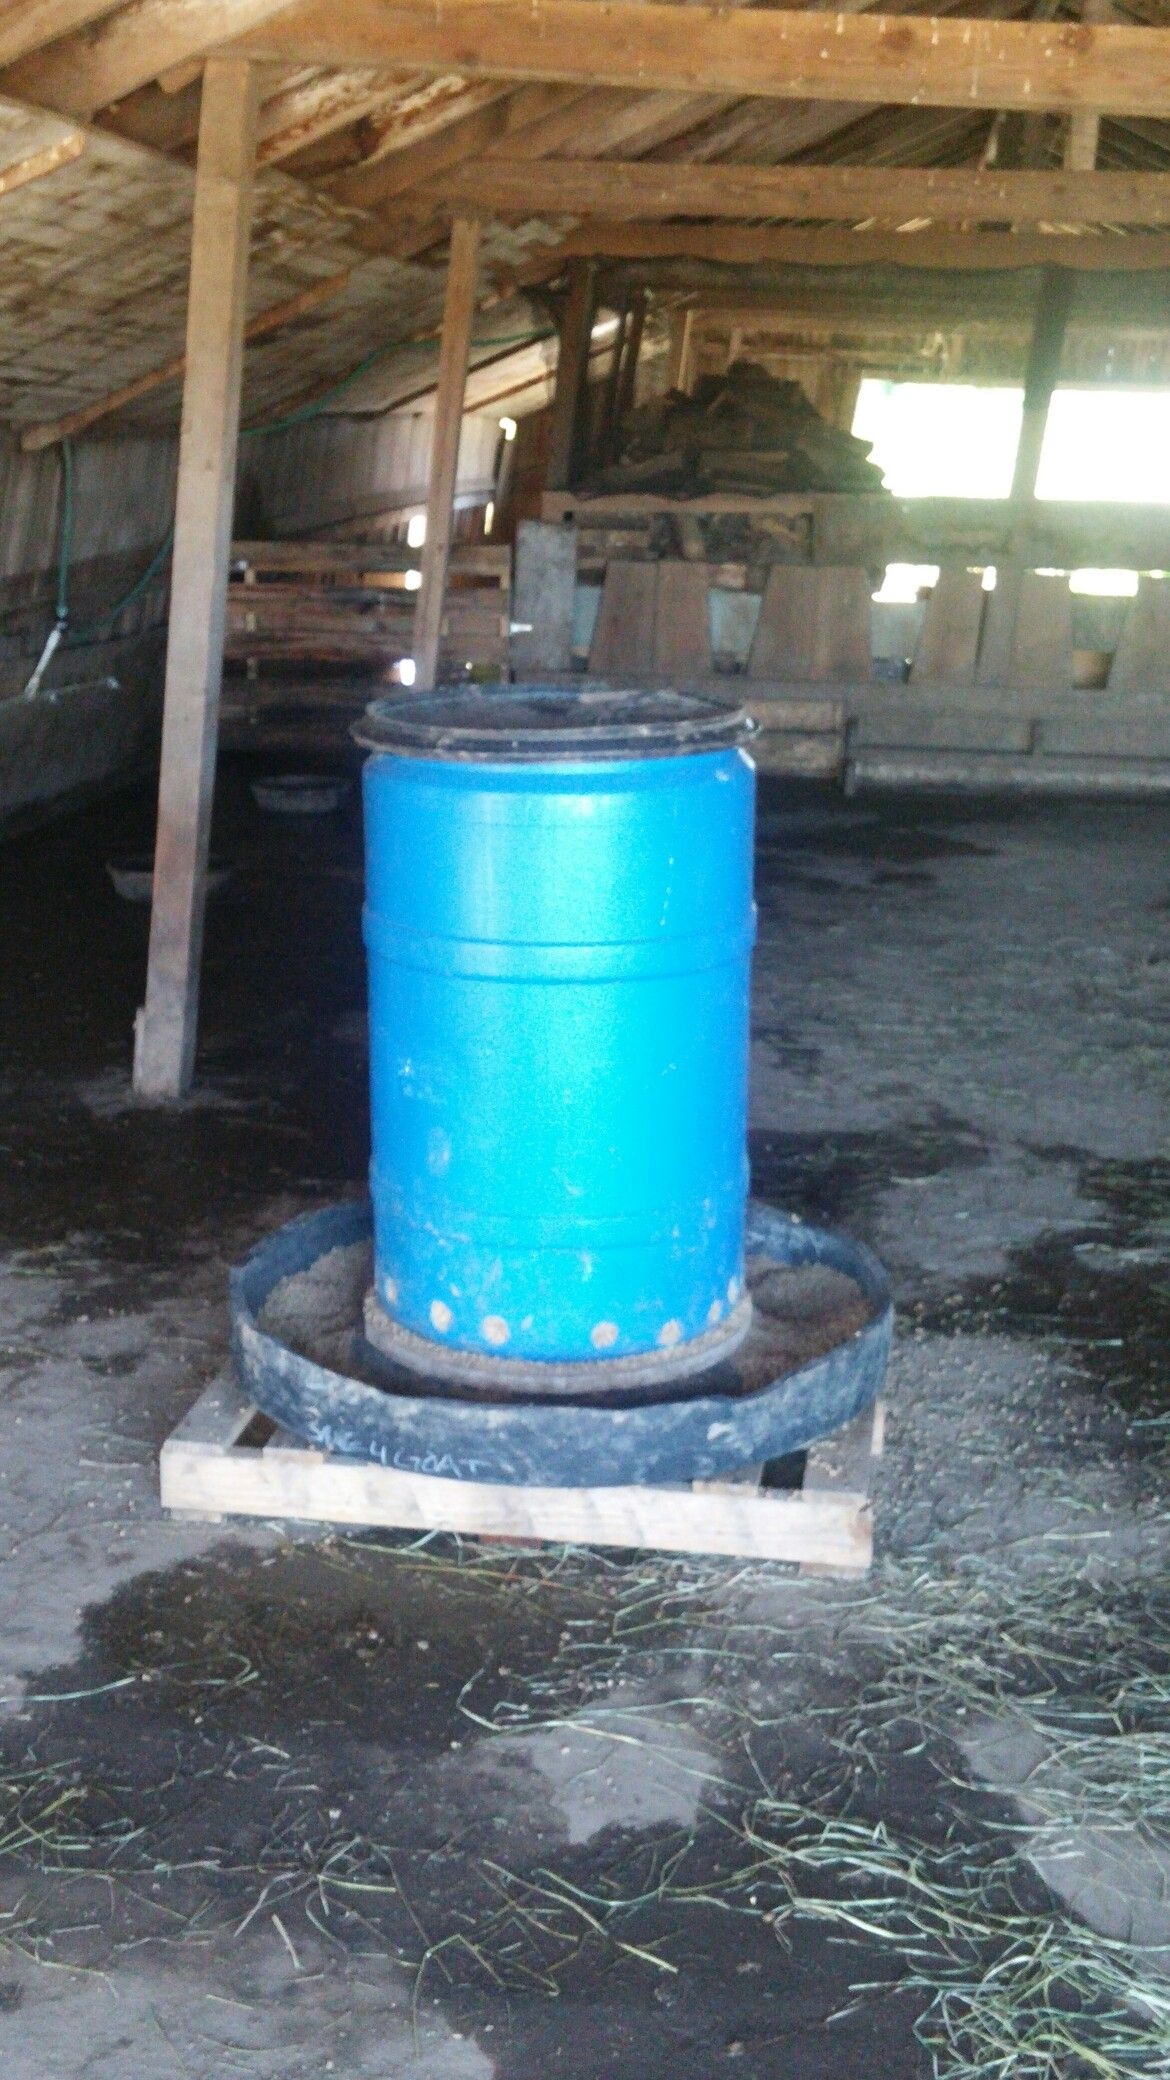 Automatic Pig Feeder 55 Gallon Barrel And Half Of A Semi Truck Tire Pig Farming Pig Feeder Pig